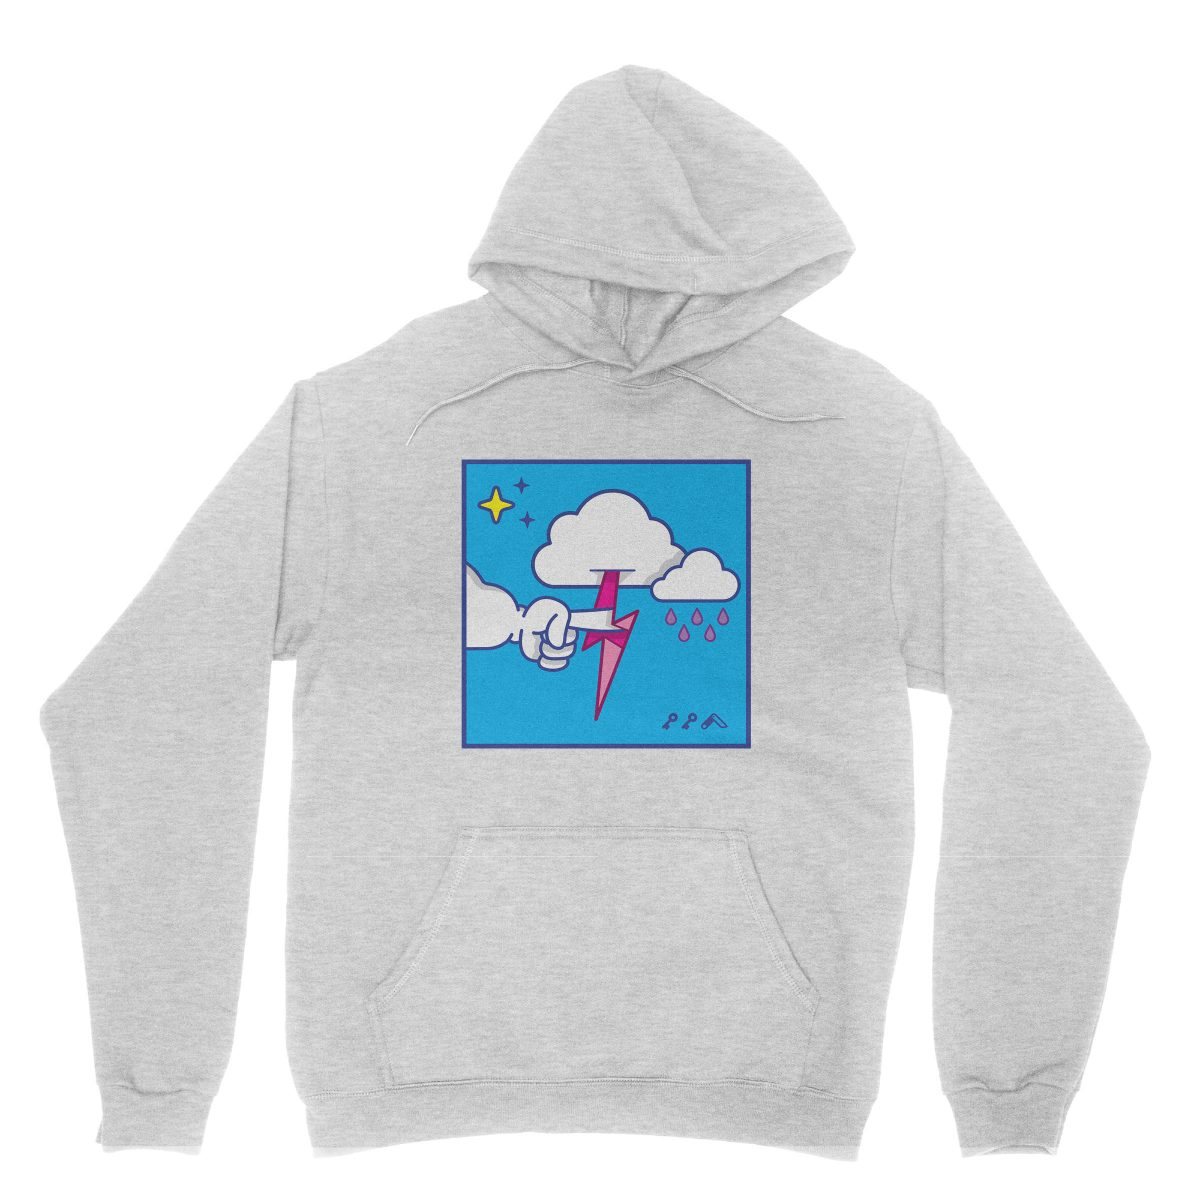 """""""MUTUAL CLOUDSENT"""" funny adult cartoon animation style hoodies in grey at kikicutt.com"""